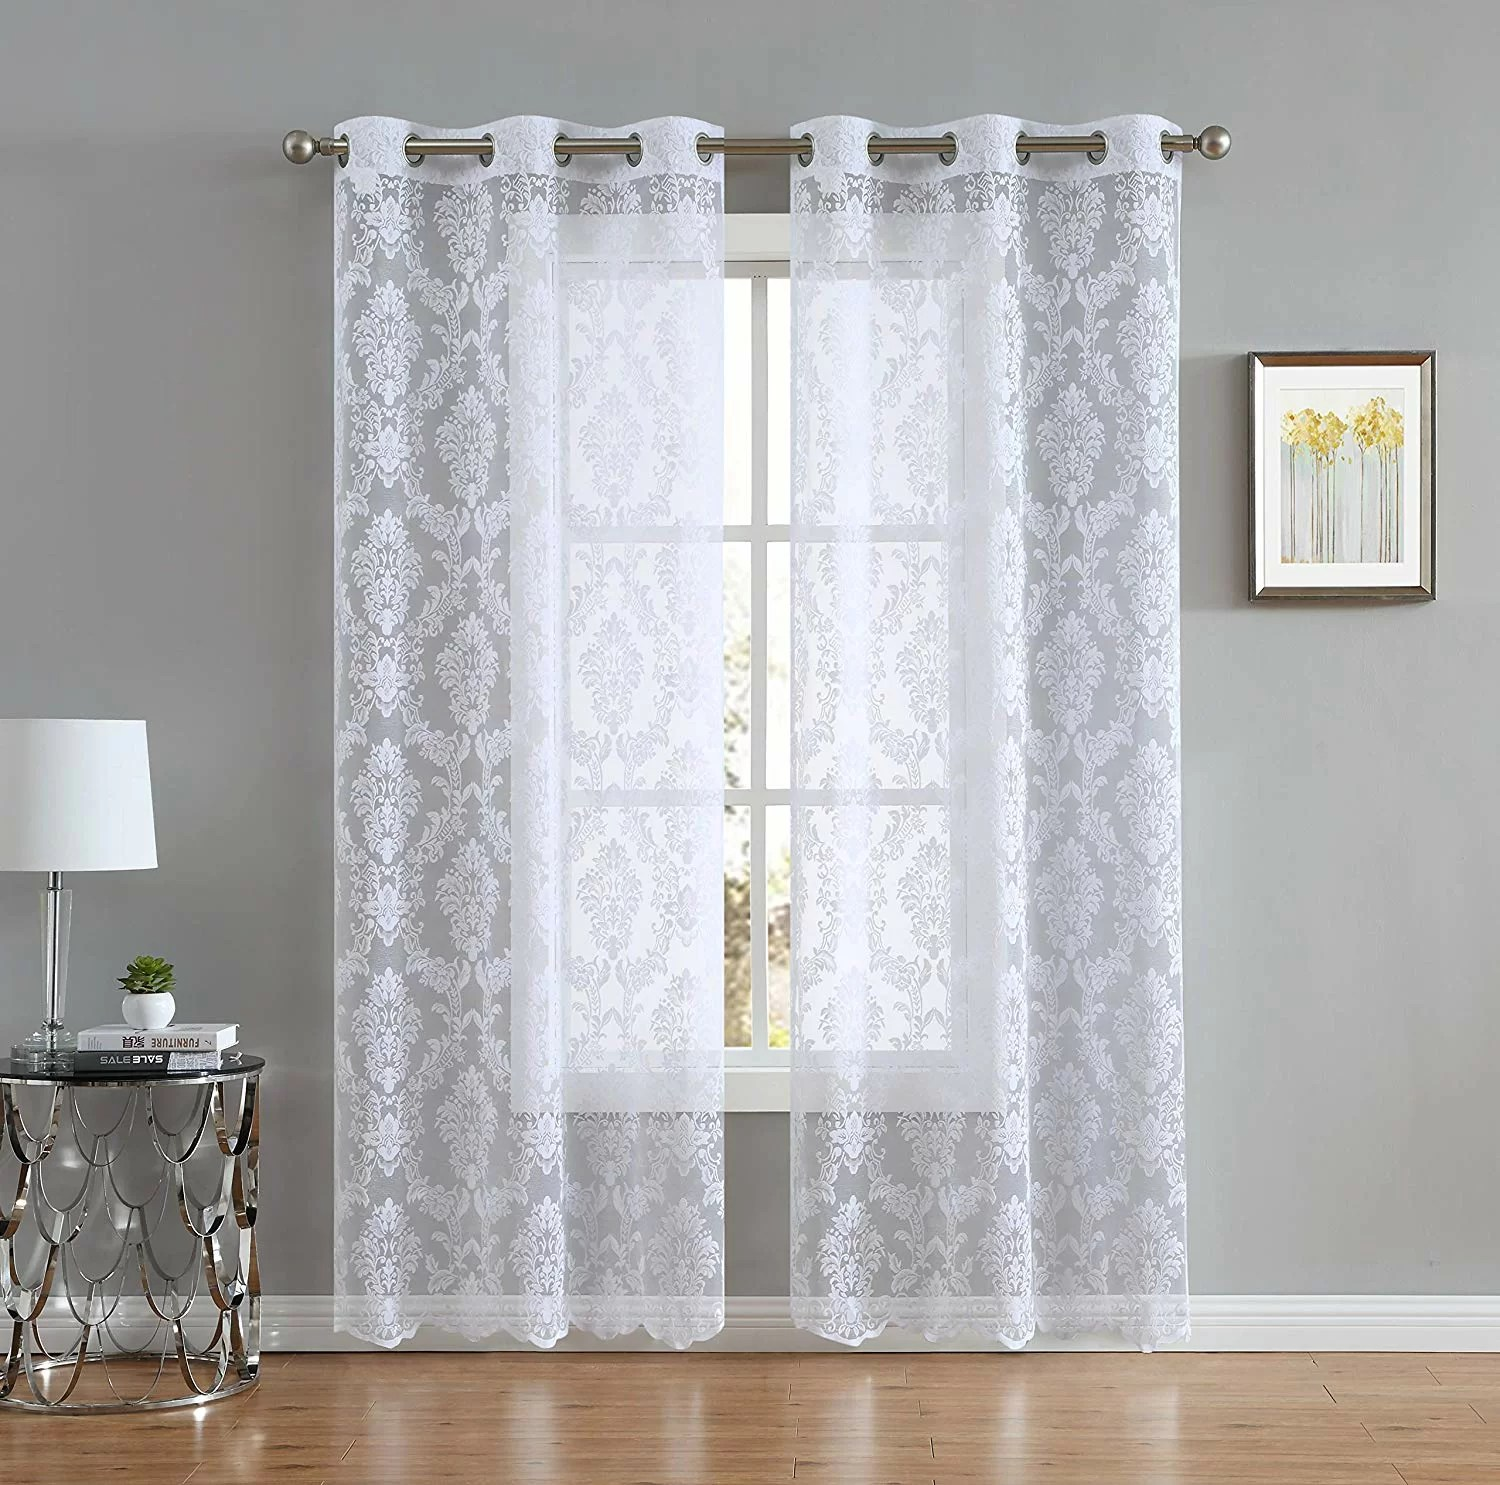 peebles knitted lace patio floral flower semi sheer curtain panels